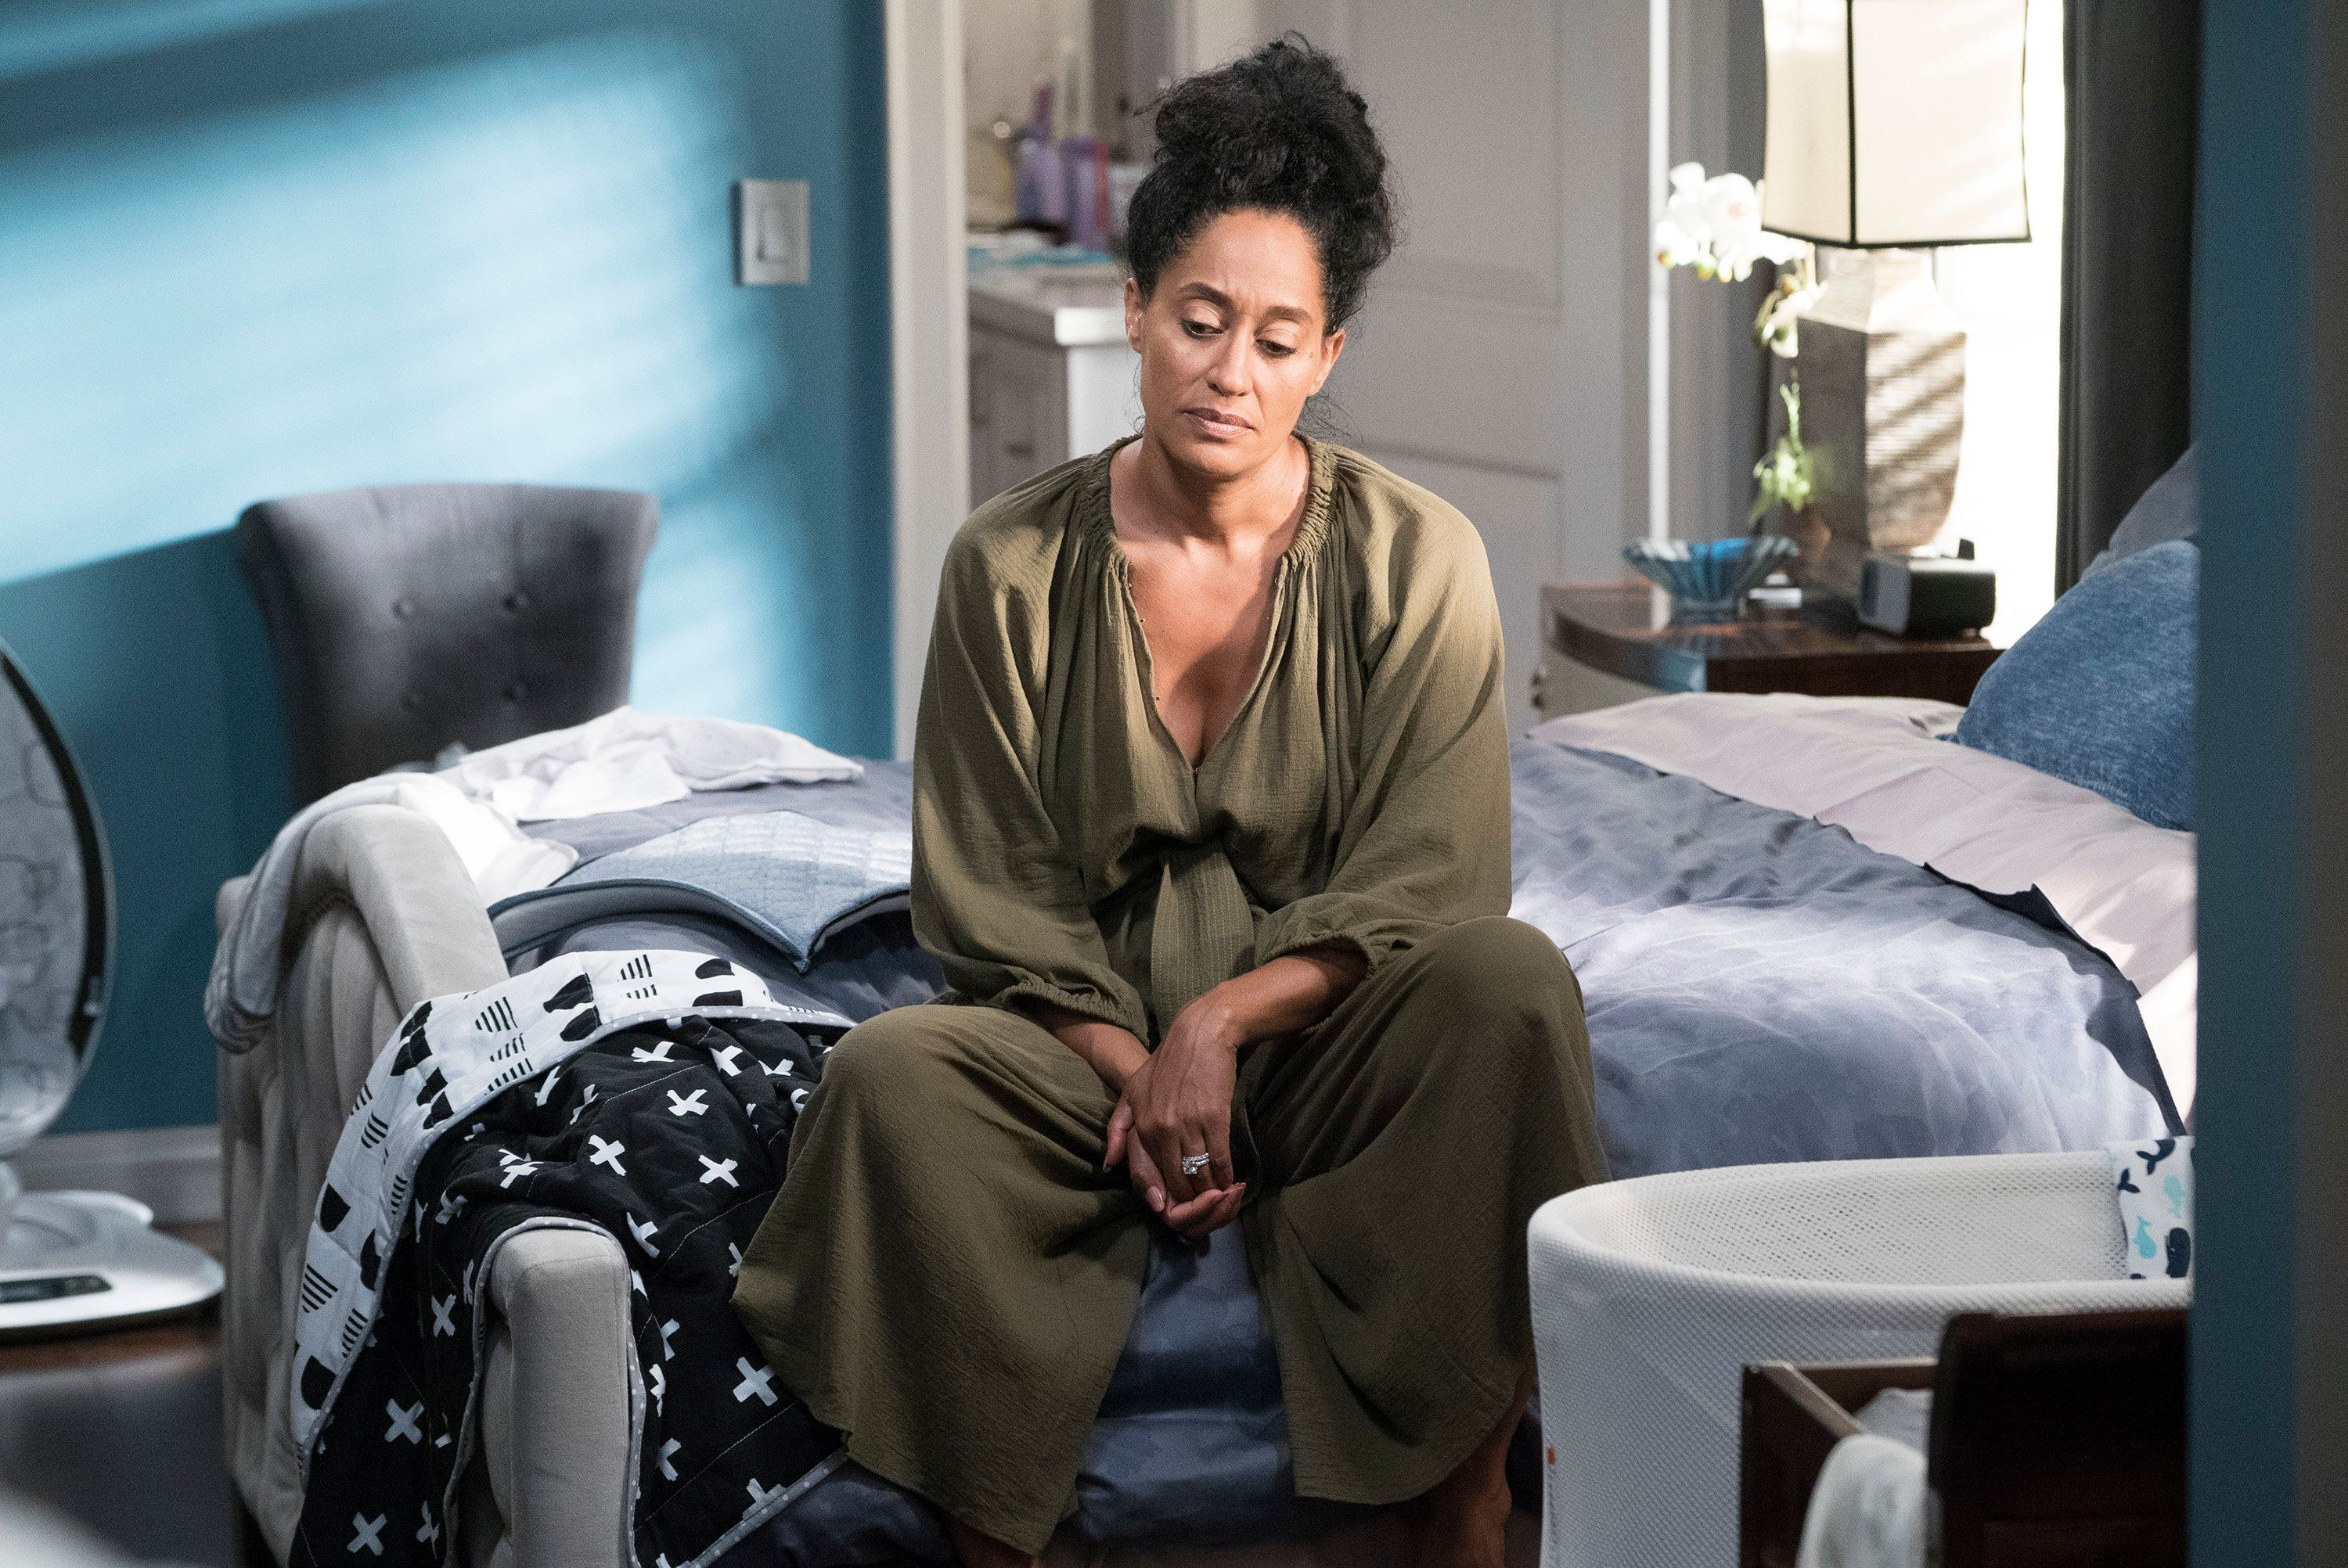 BLACK-ISH - 'Mother Nature' - Bow is feeling overwhelmed after the birth of DeVante and learns she is suffering from postpartum depression. Dre urges her to get help and stands by her side while she works through it. Meanwhile, the kids babyproof the house in an effort to help their parents out, on 'black-ish,' TUESDAY, OCTOBER 10 (9:00-9:30 p.m. EDT), on The ABC Television Network. (Eric McCandless/ABC via Getty Images) TRACEE ELLIS ROSS